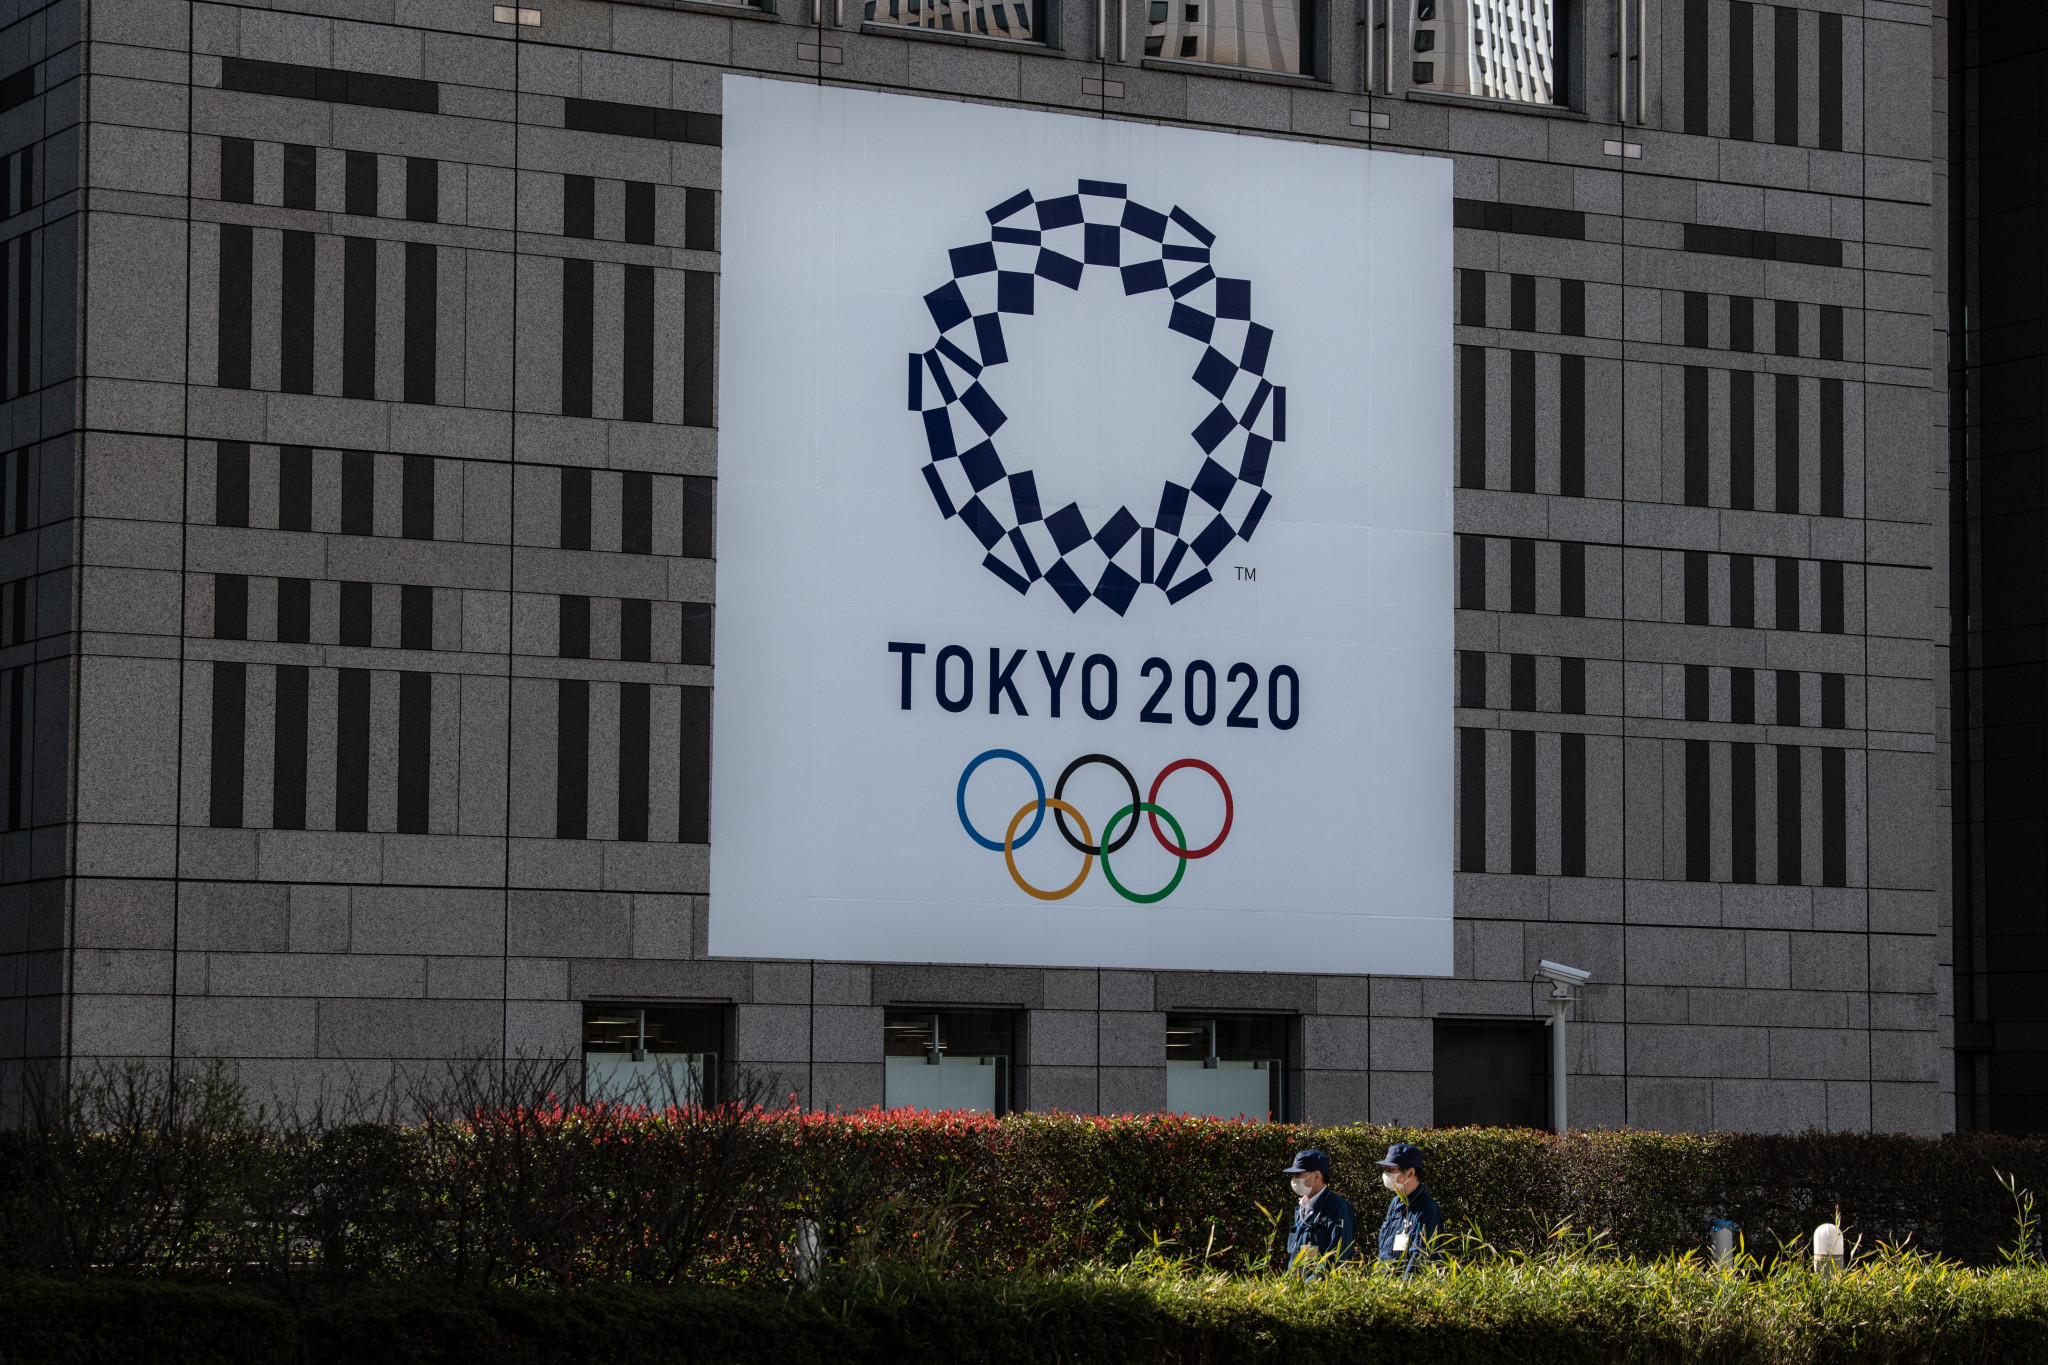 Tokyo 2020 will now be held in 2021 ©Getty Images